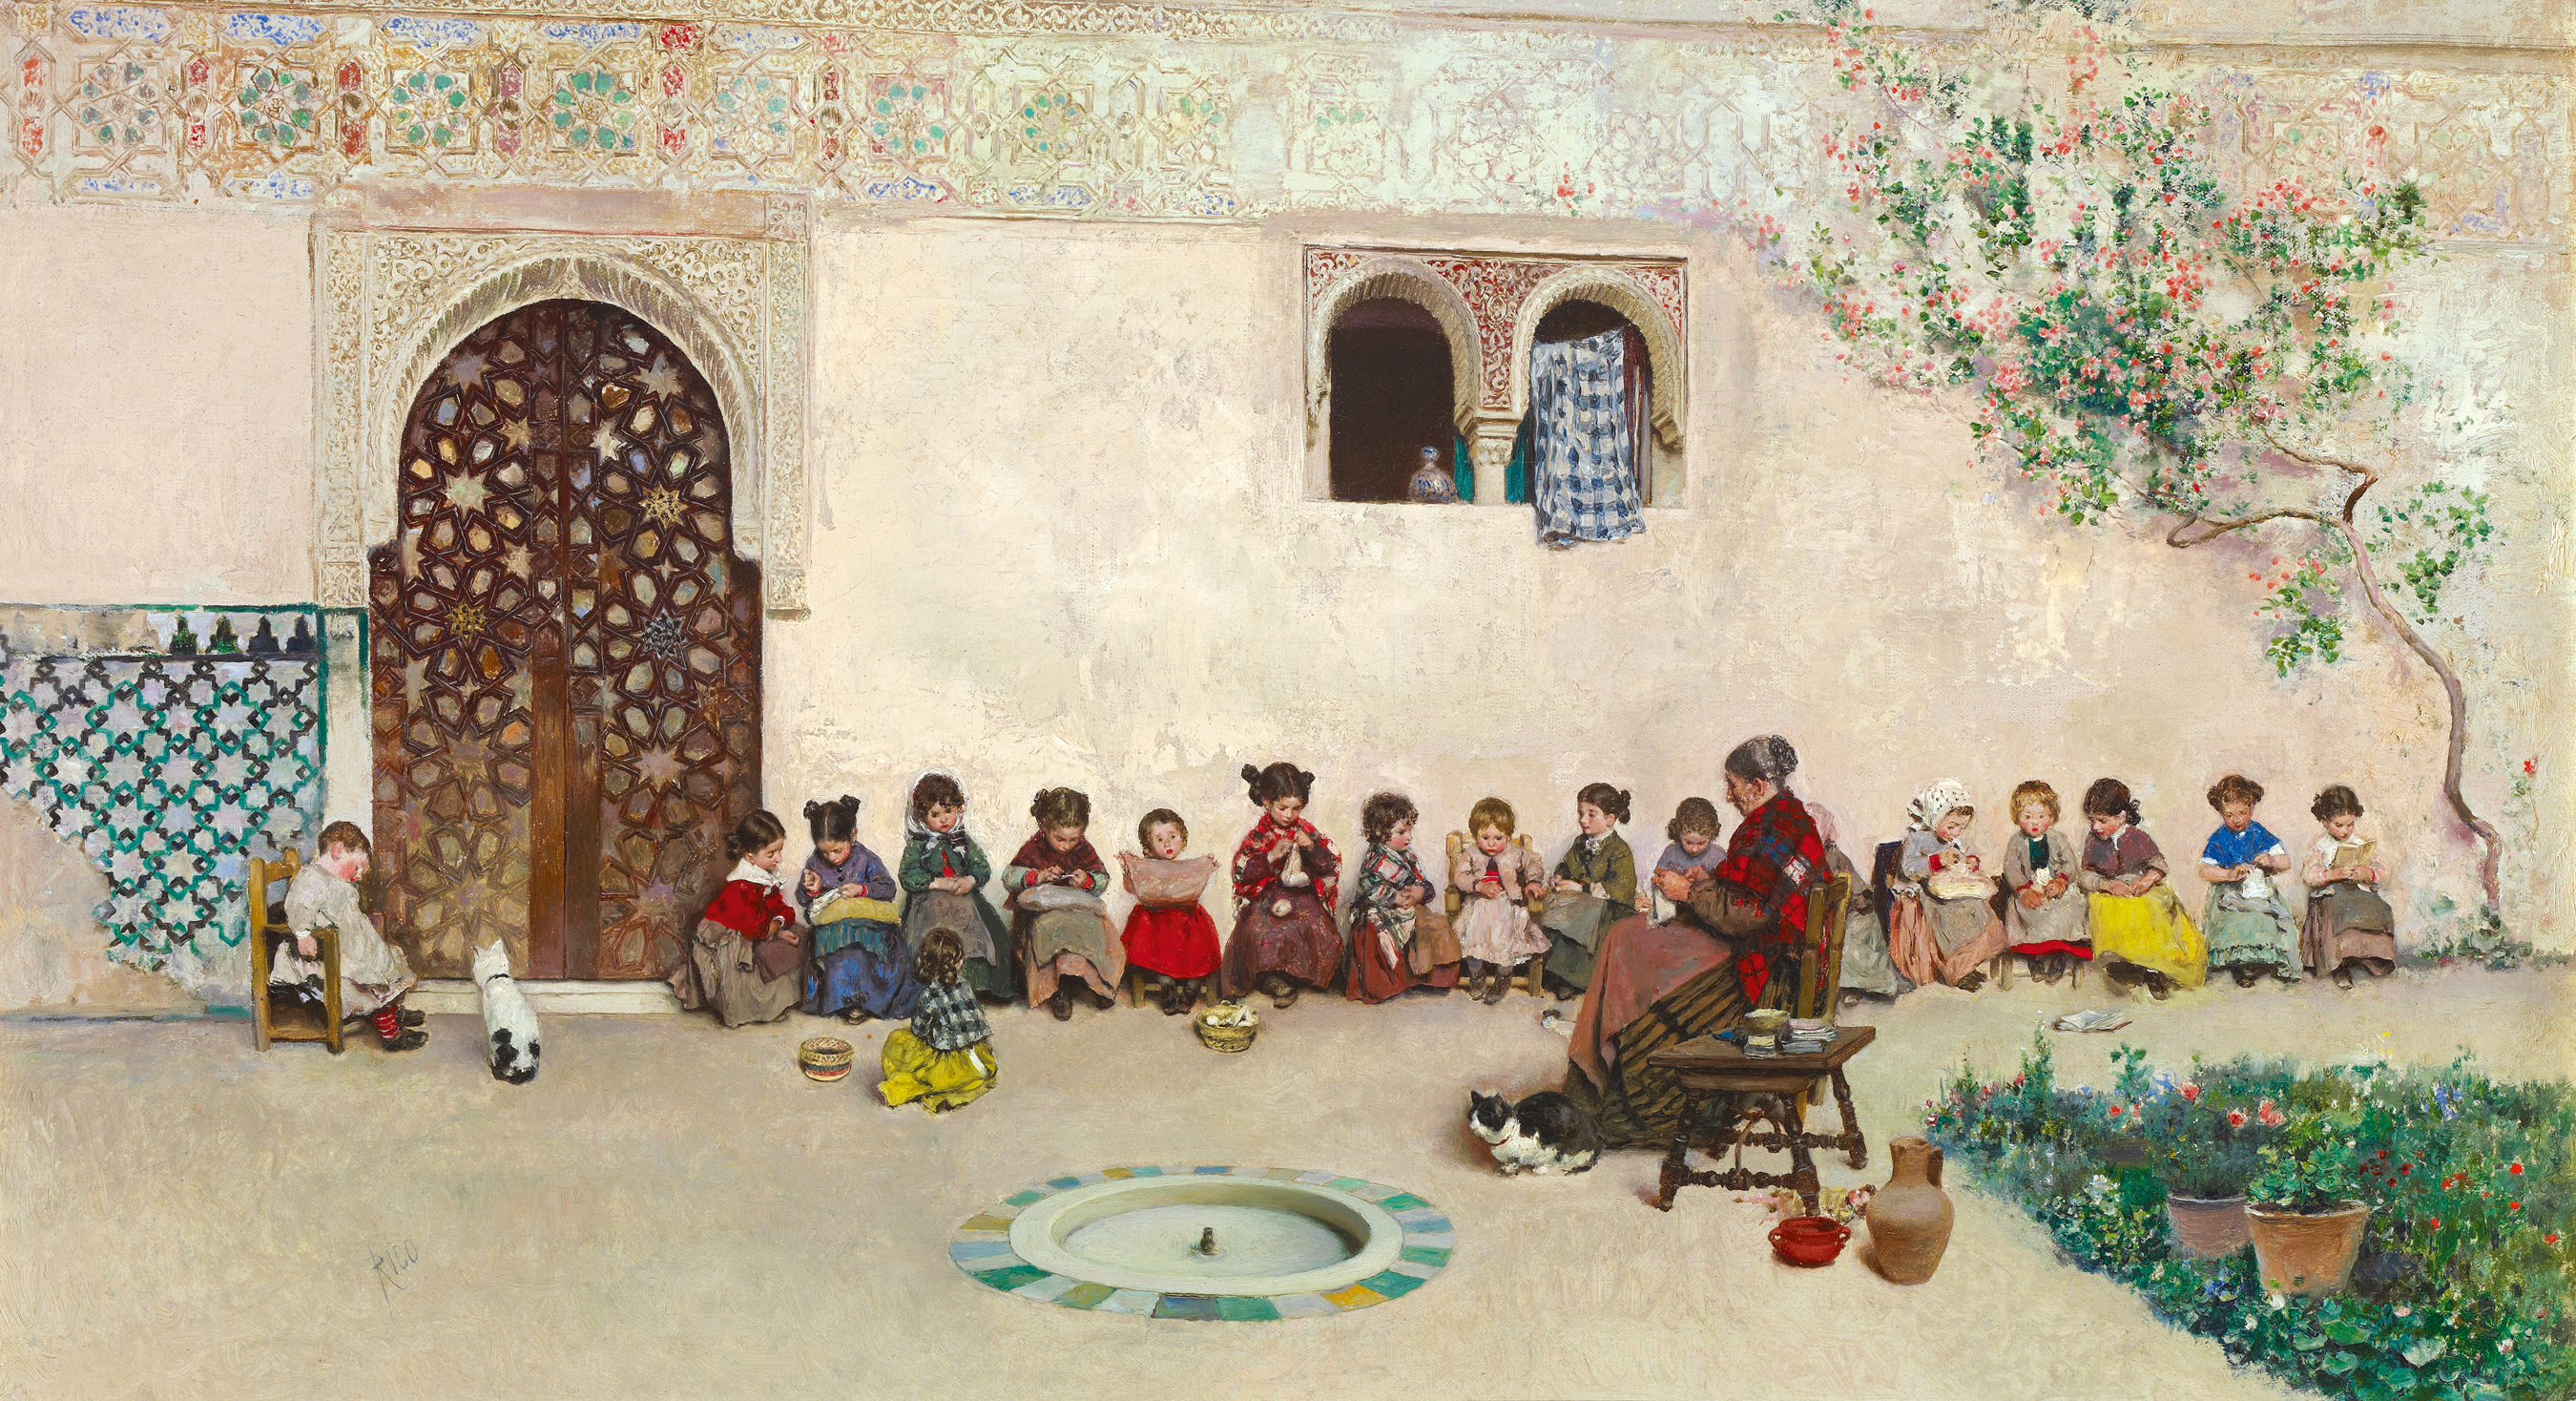 Martín Rico y Ortega (Spanish, 1833-1908), The School Patio, 1871. Oil on canvas. Private collection, Madrid